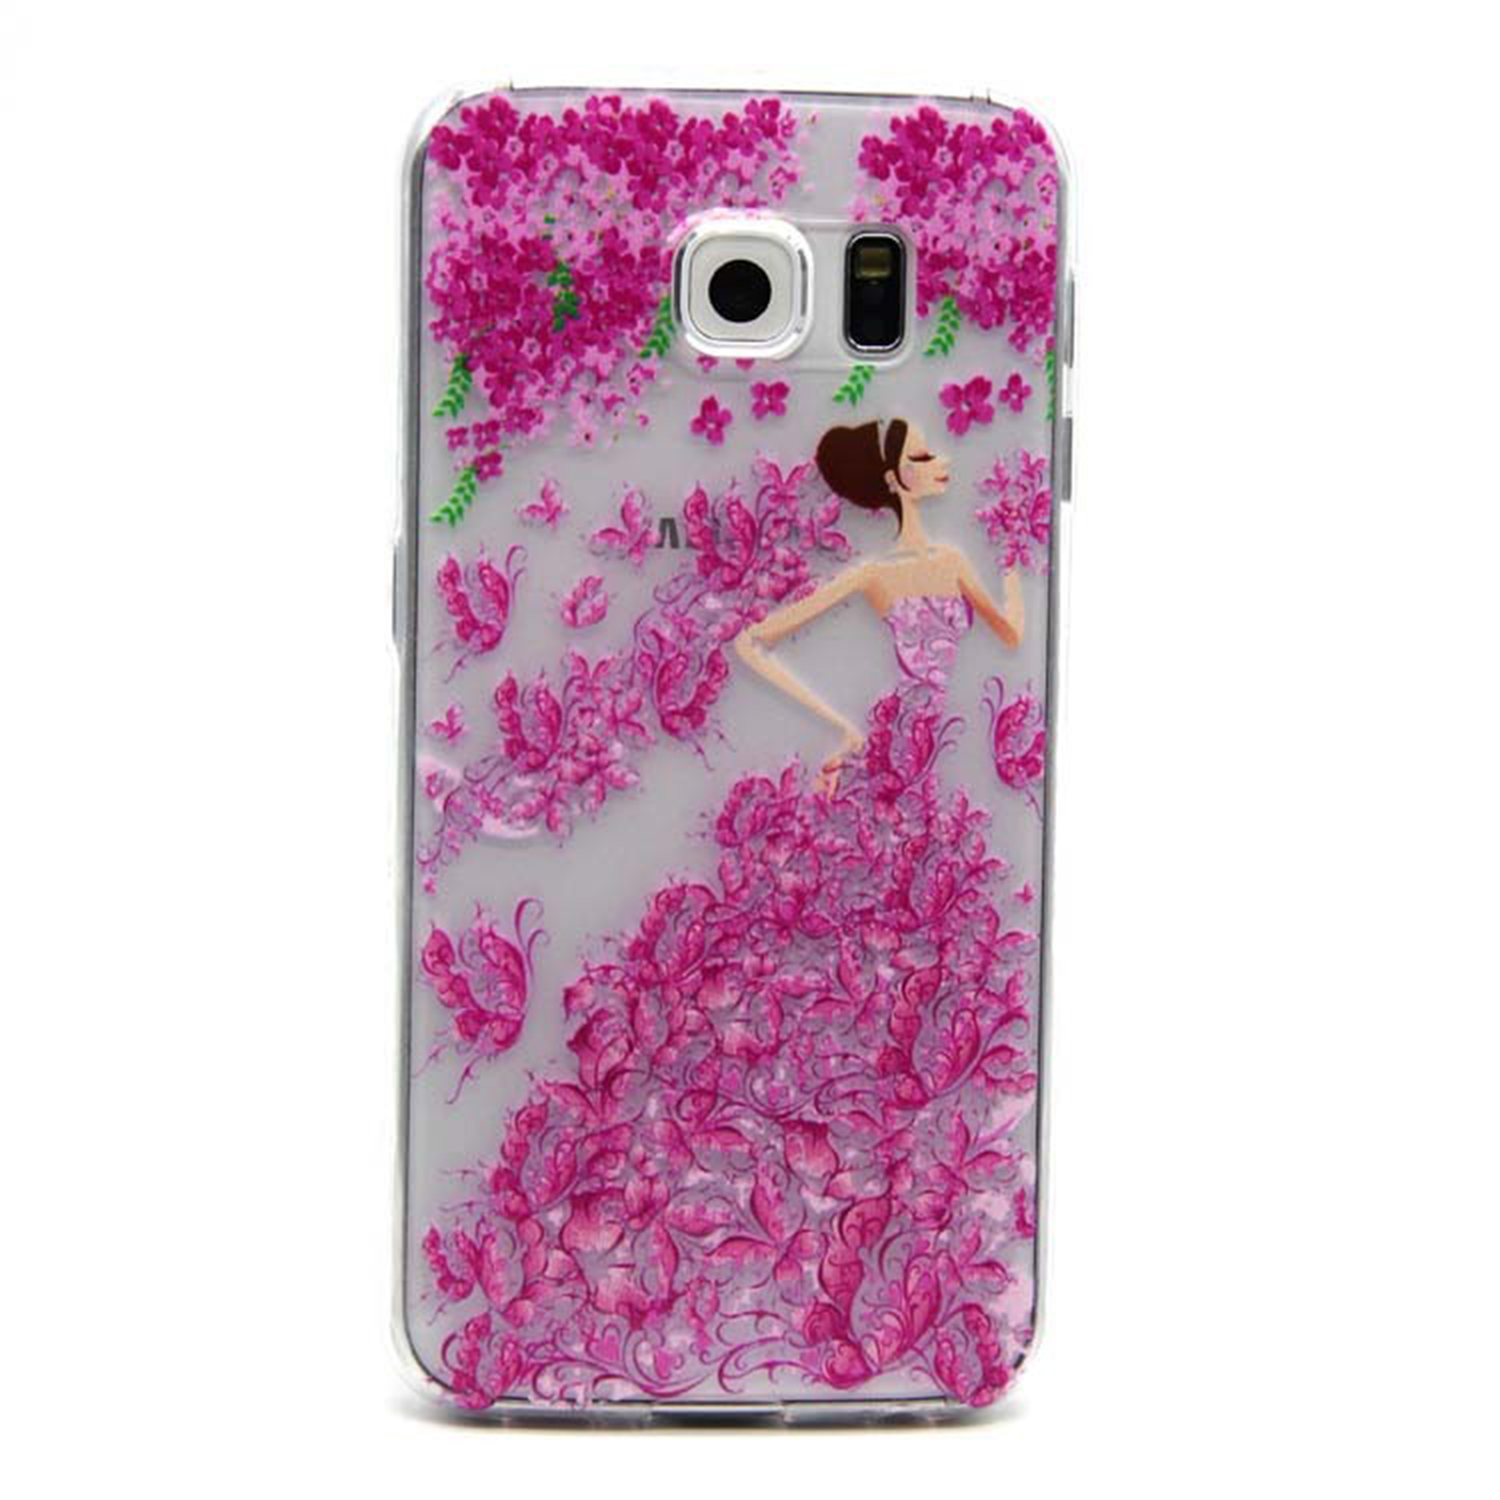 Kritzel Case Collection Galaxy S6 - Mod. 477